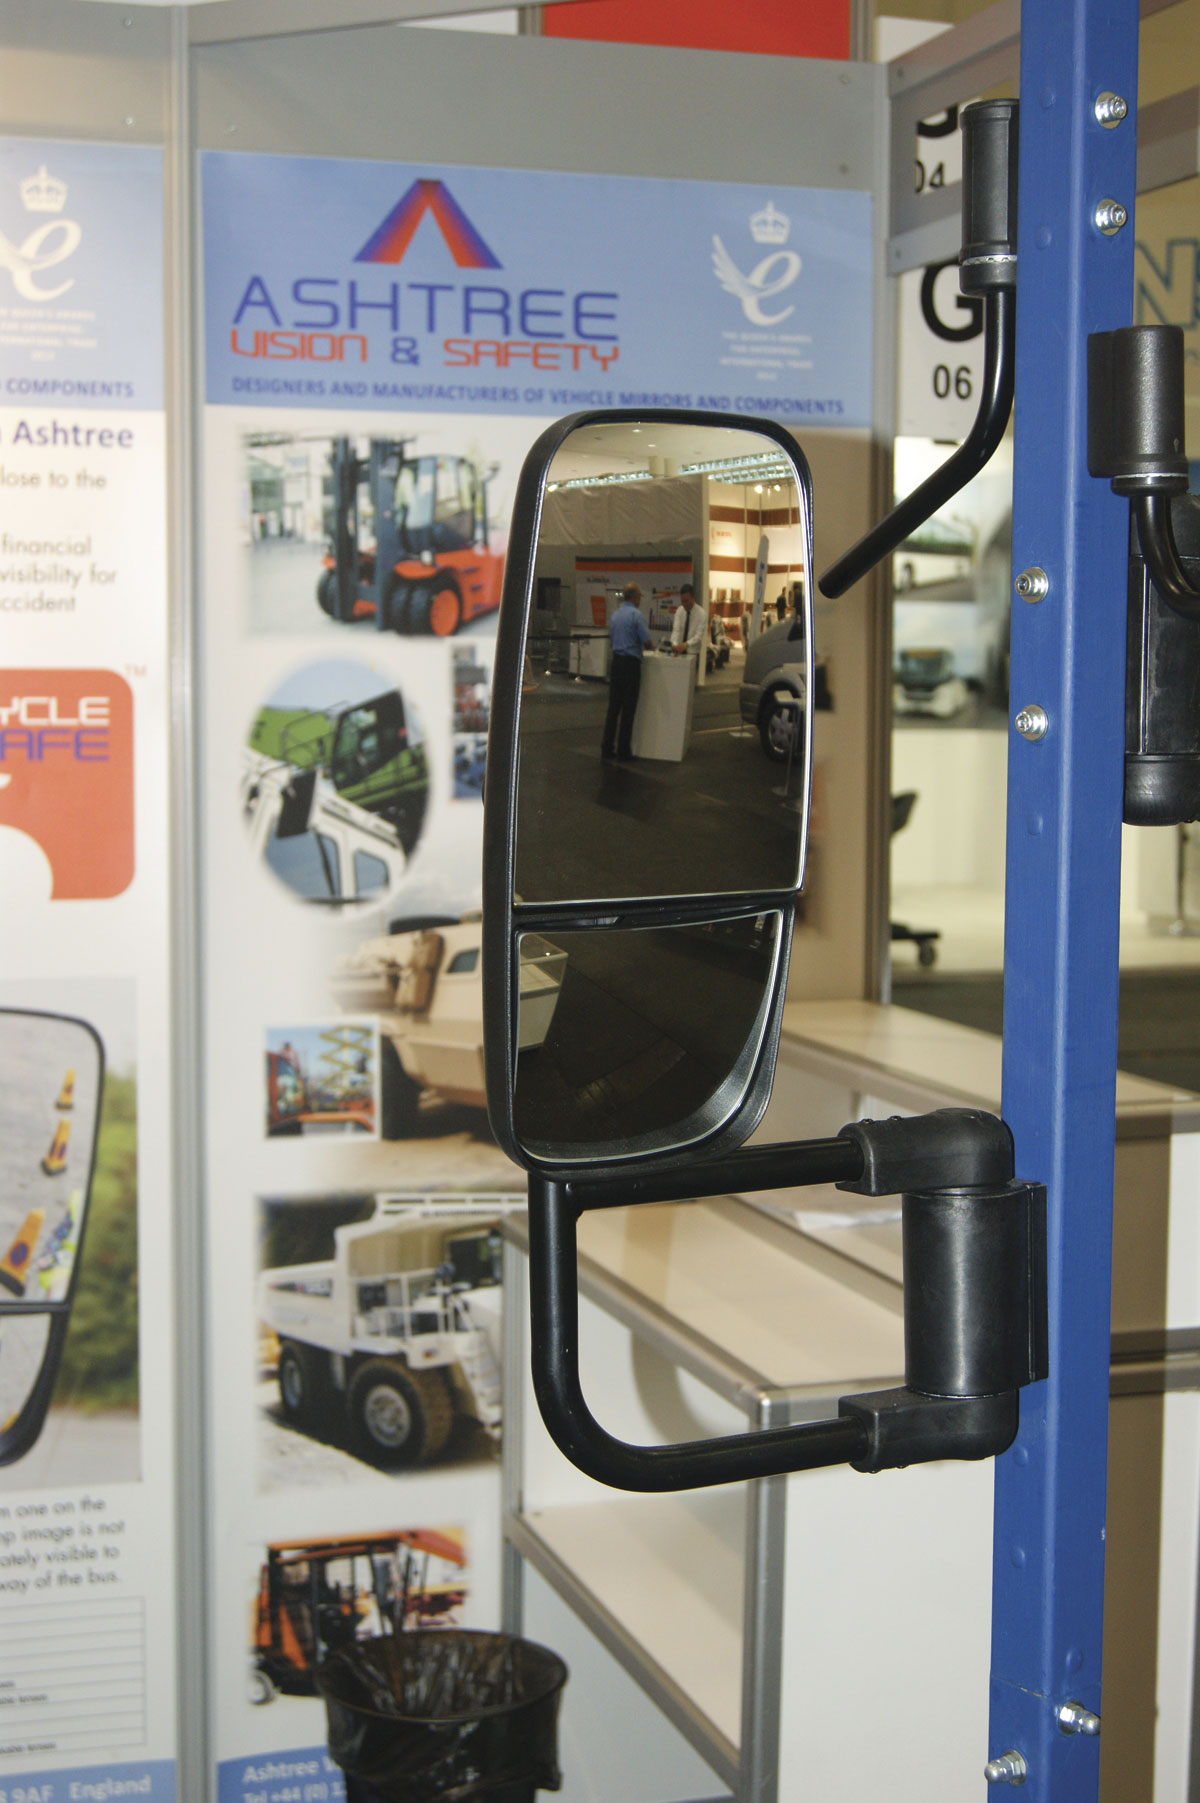 Ashtree Vision and Safety mirrors with new arms - 2